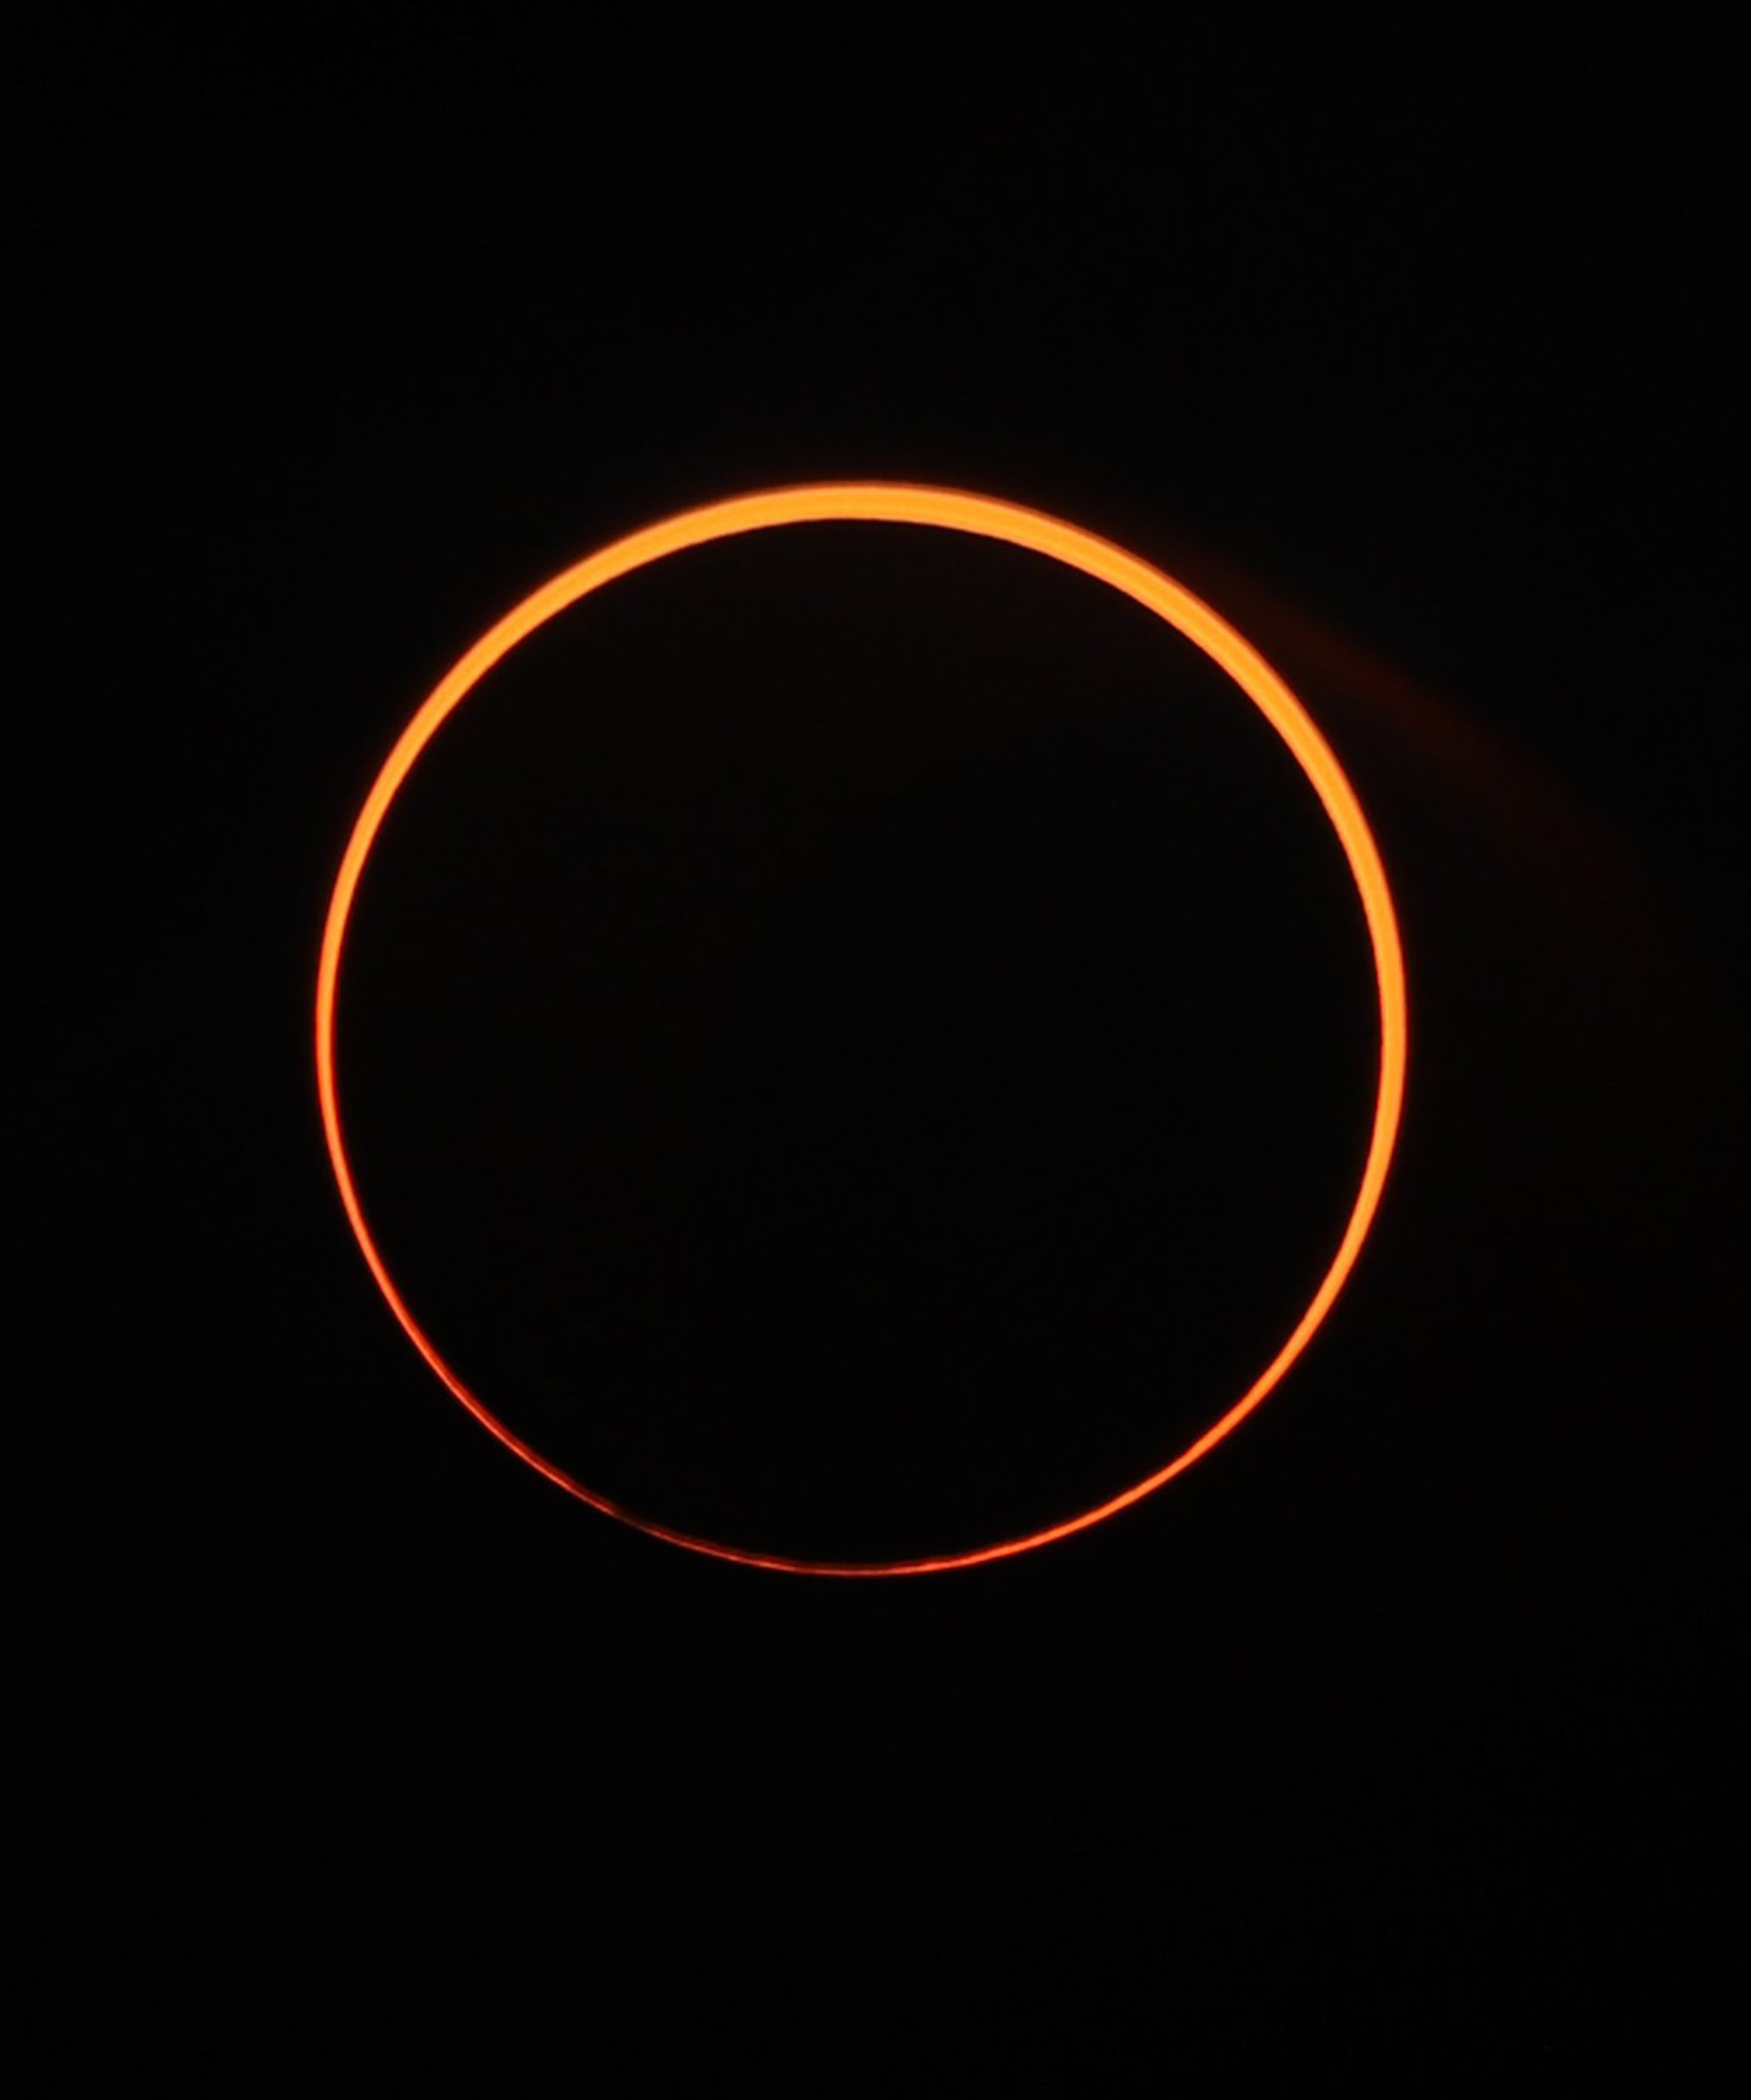 What does the solar eclipse mean spiritually